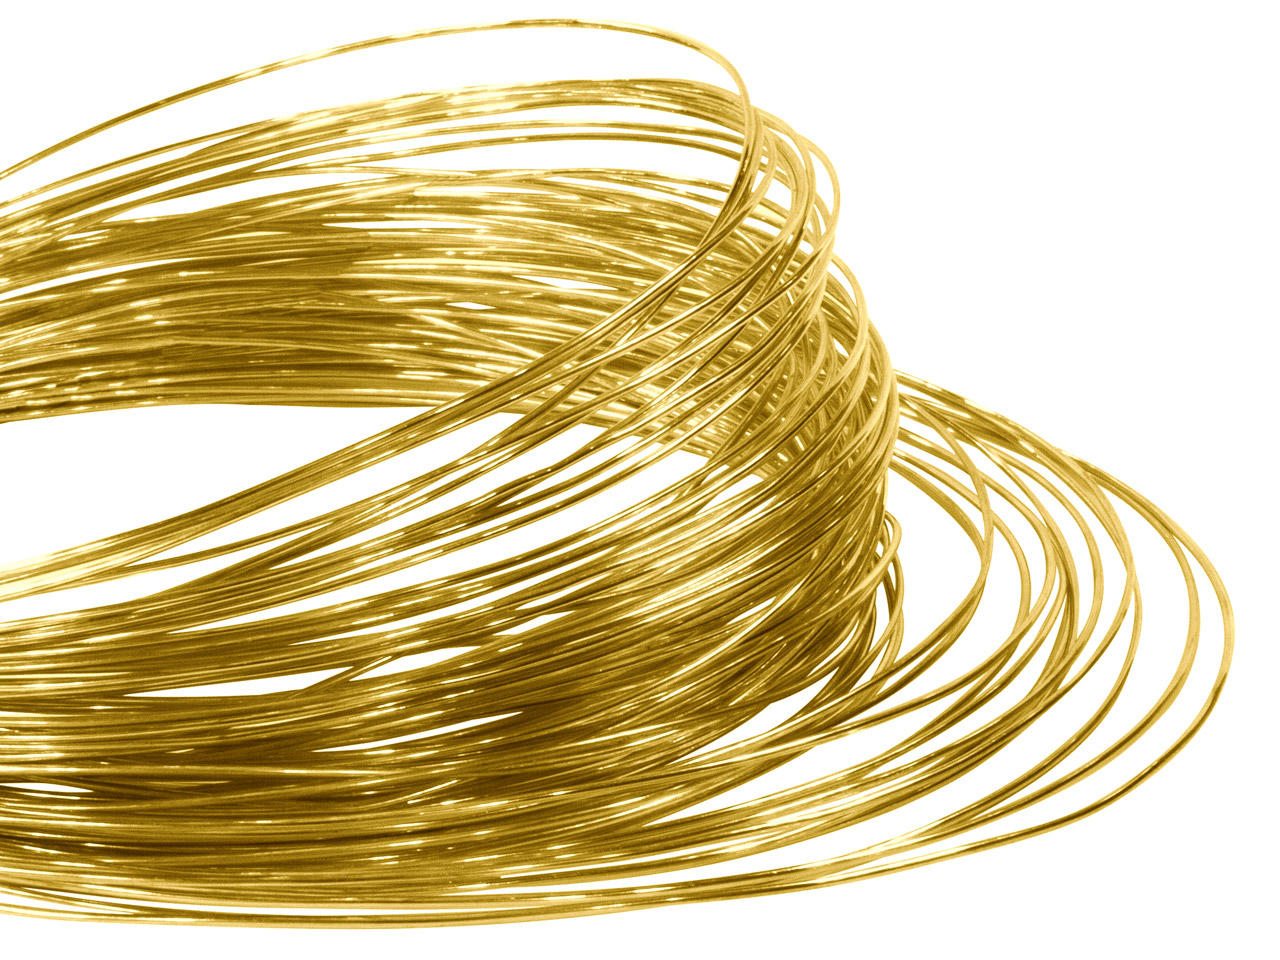 18hab Round Pin Wire 0.80mm Fully  Hard, Coils, 100% Recycled Gold